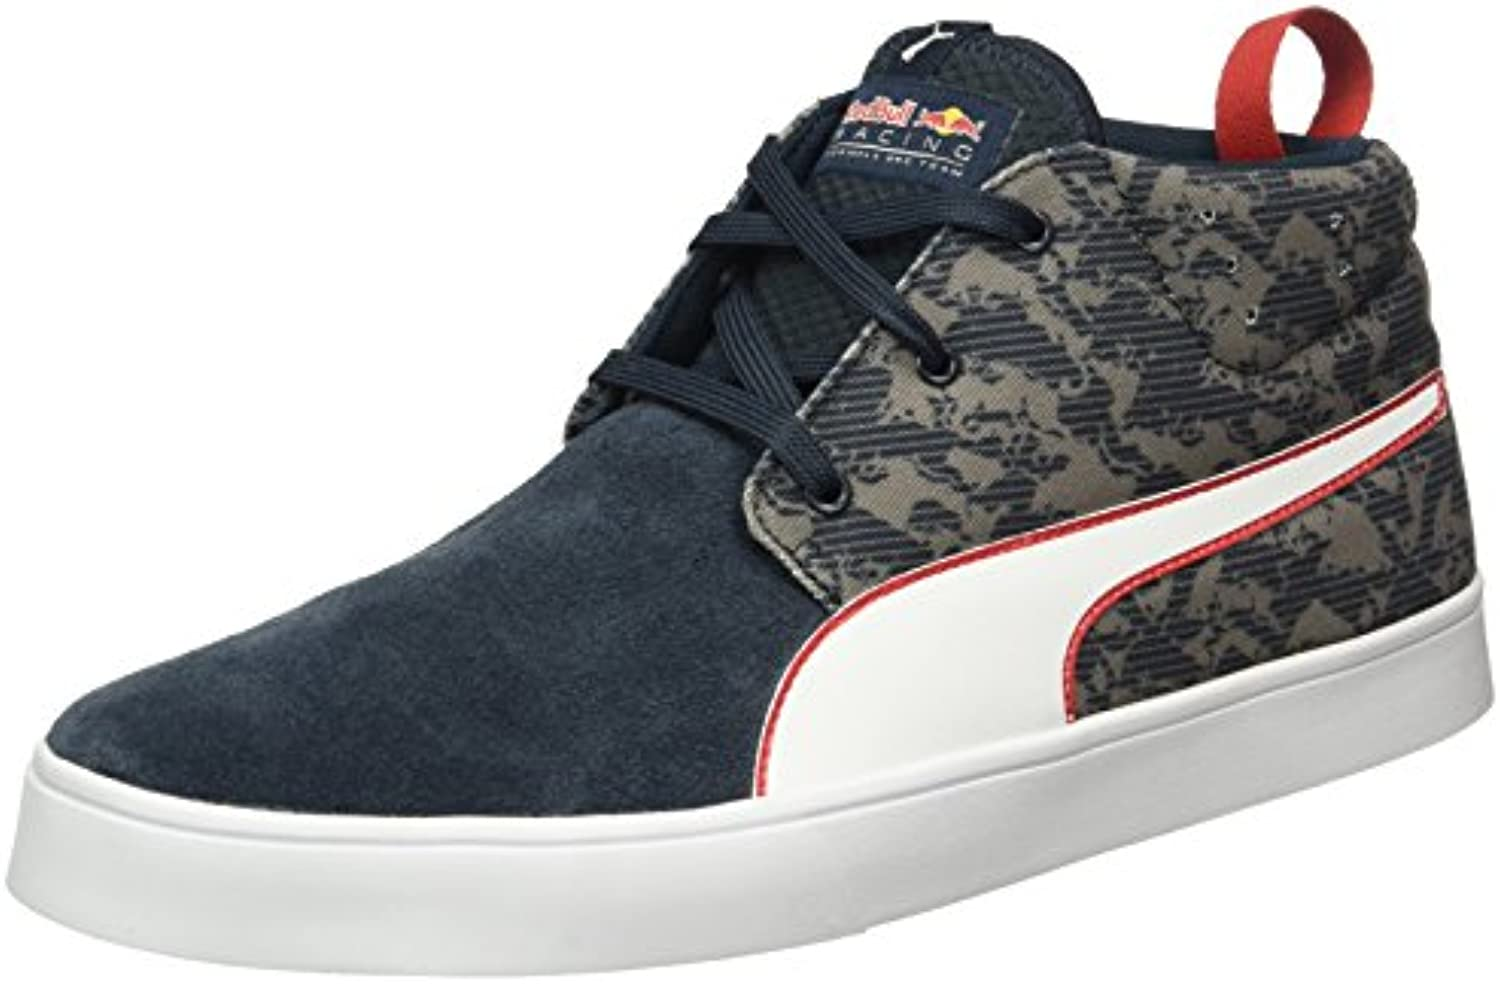 Puma Herren RBR Desert Boot VULC SBE Low Top